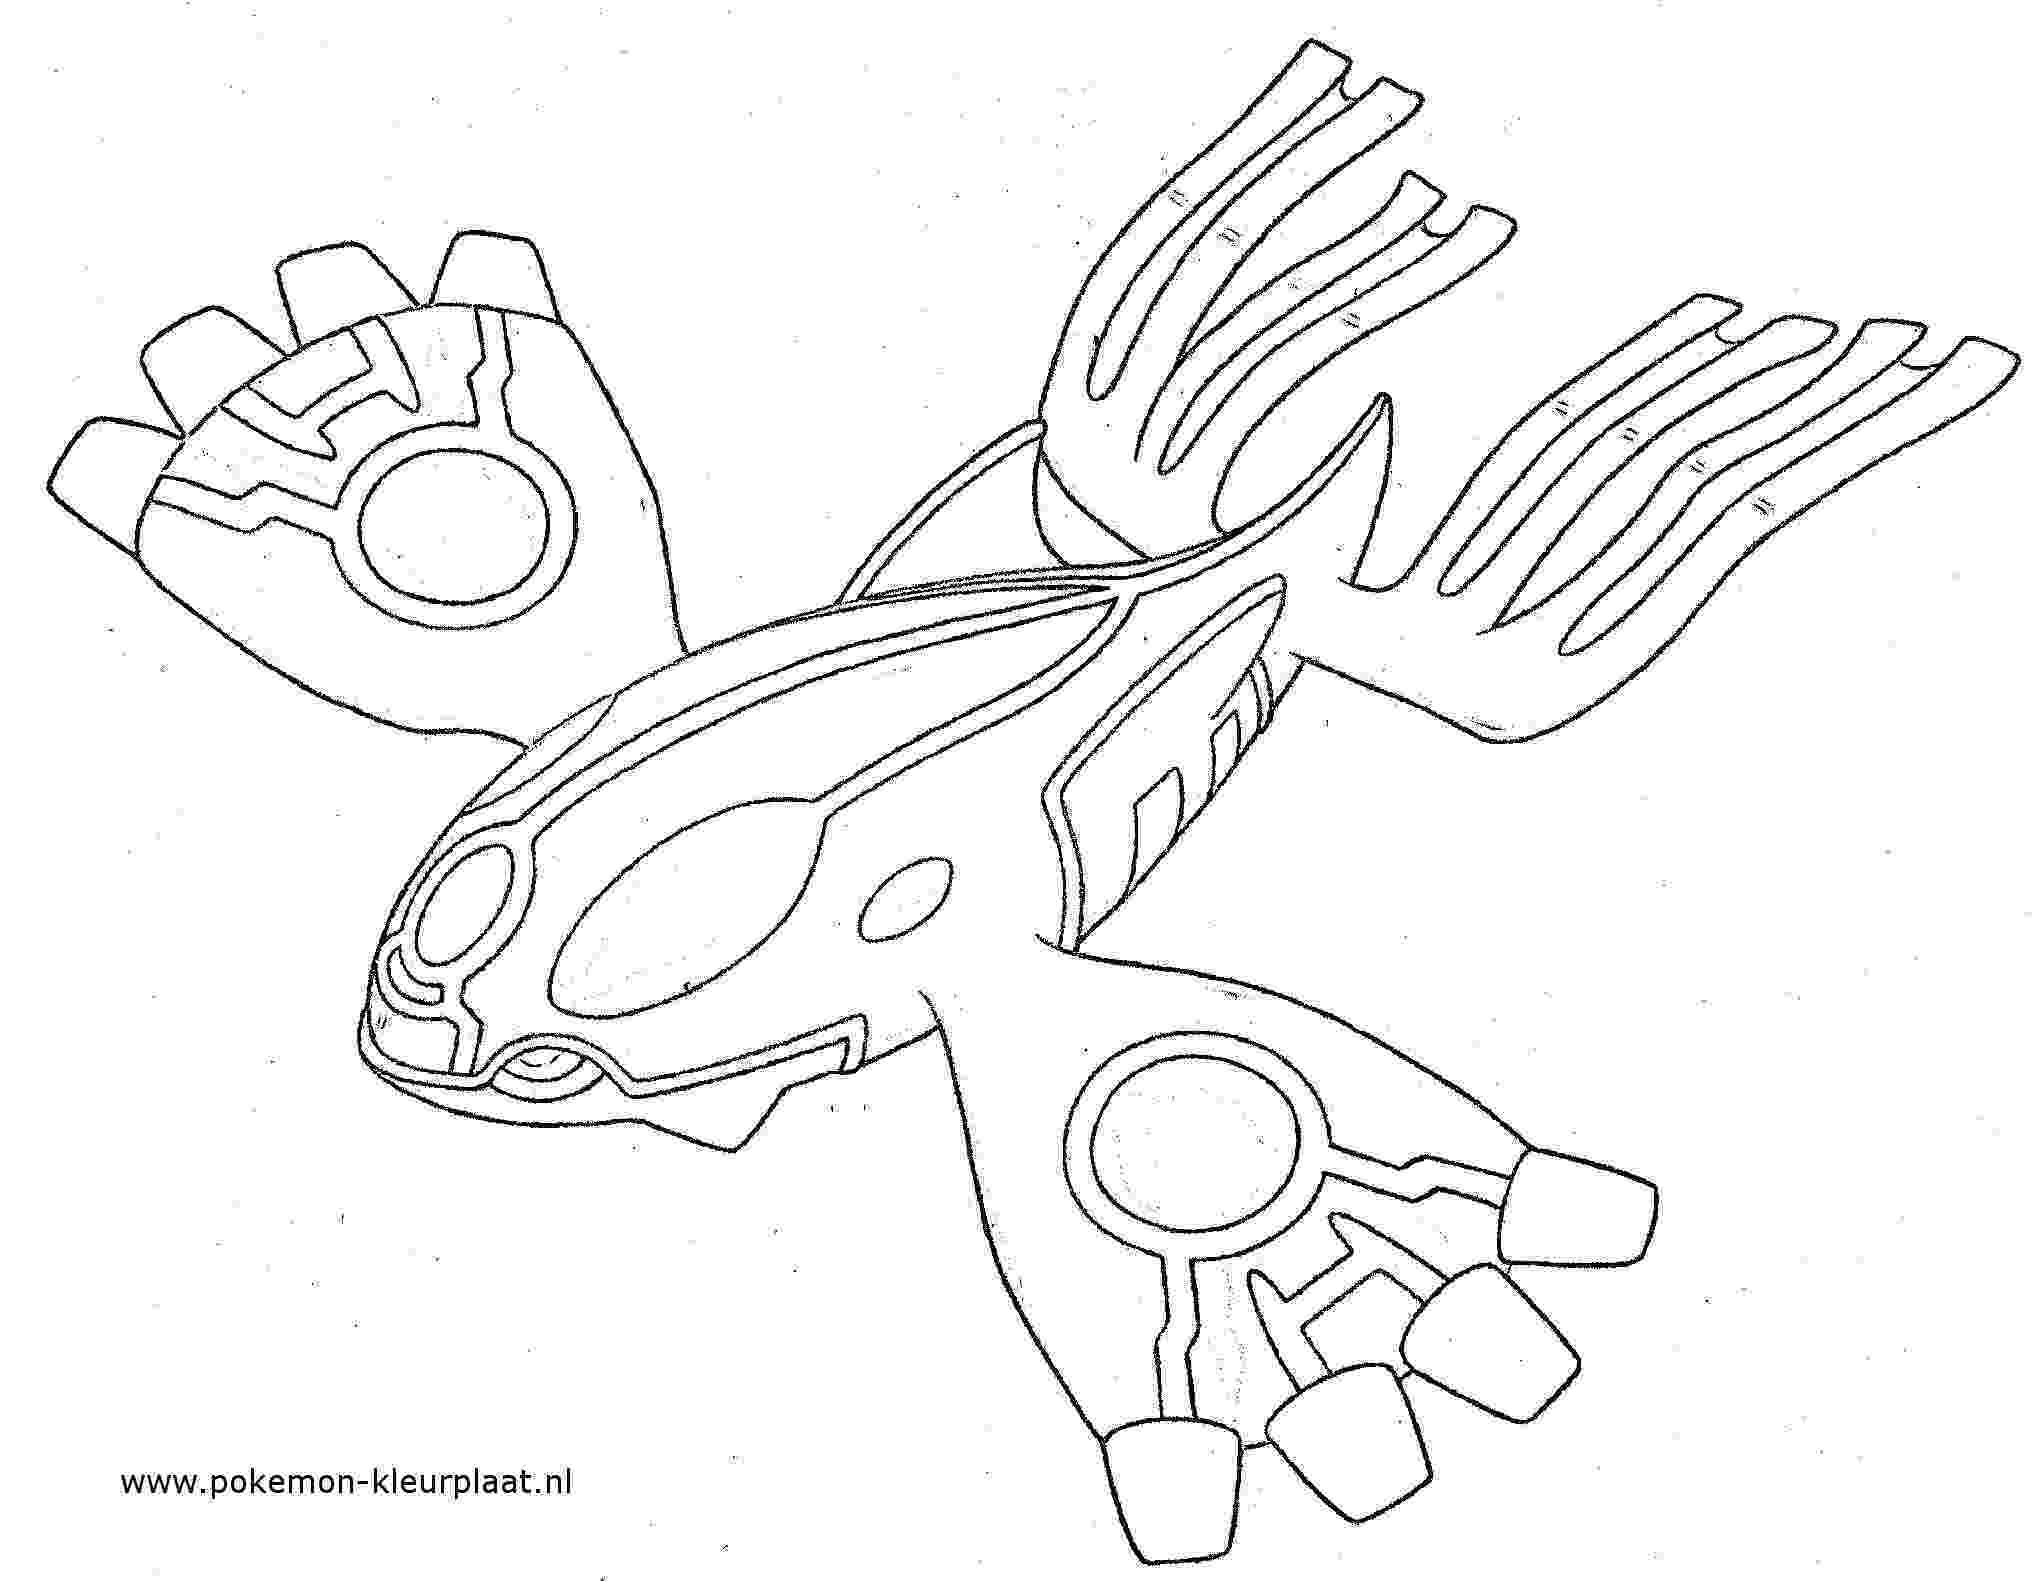 primal groudon coloring page the best free primal drawing images download from 91 free groudon page coloring primal